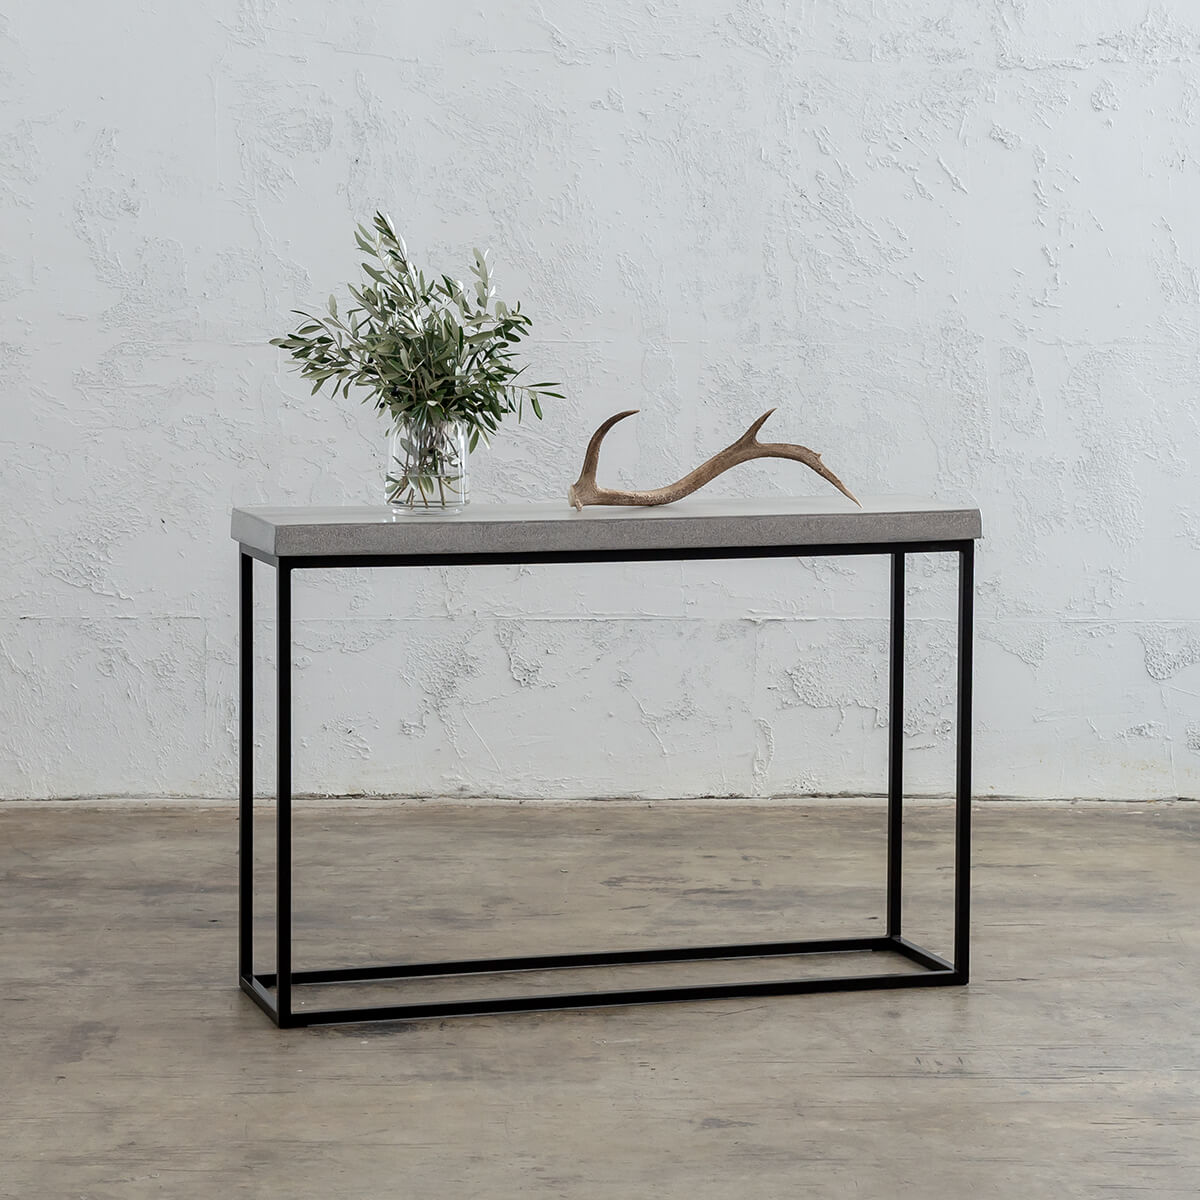 ARIA CONCRETE GRANITE CONSOLE TABLE   |  ZINC ASH